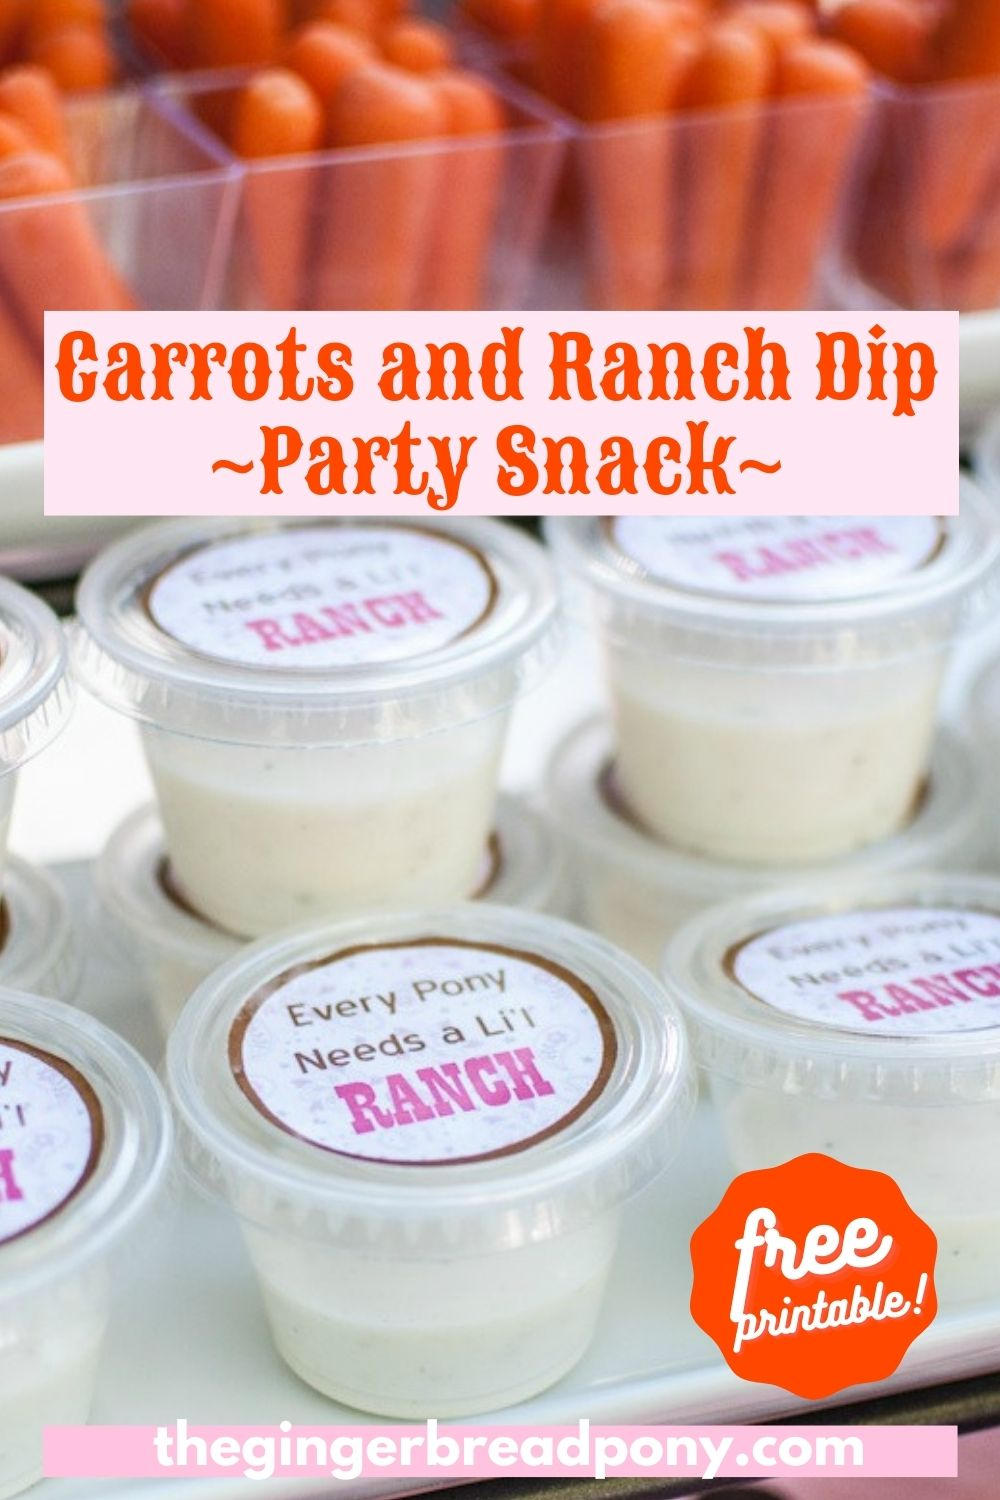 Ranch Dip Party Snack PIN